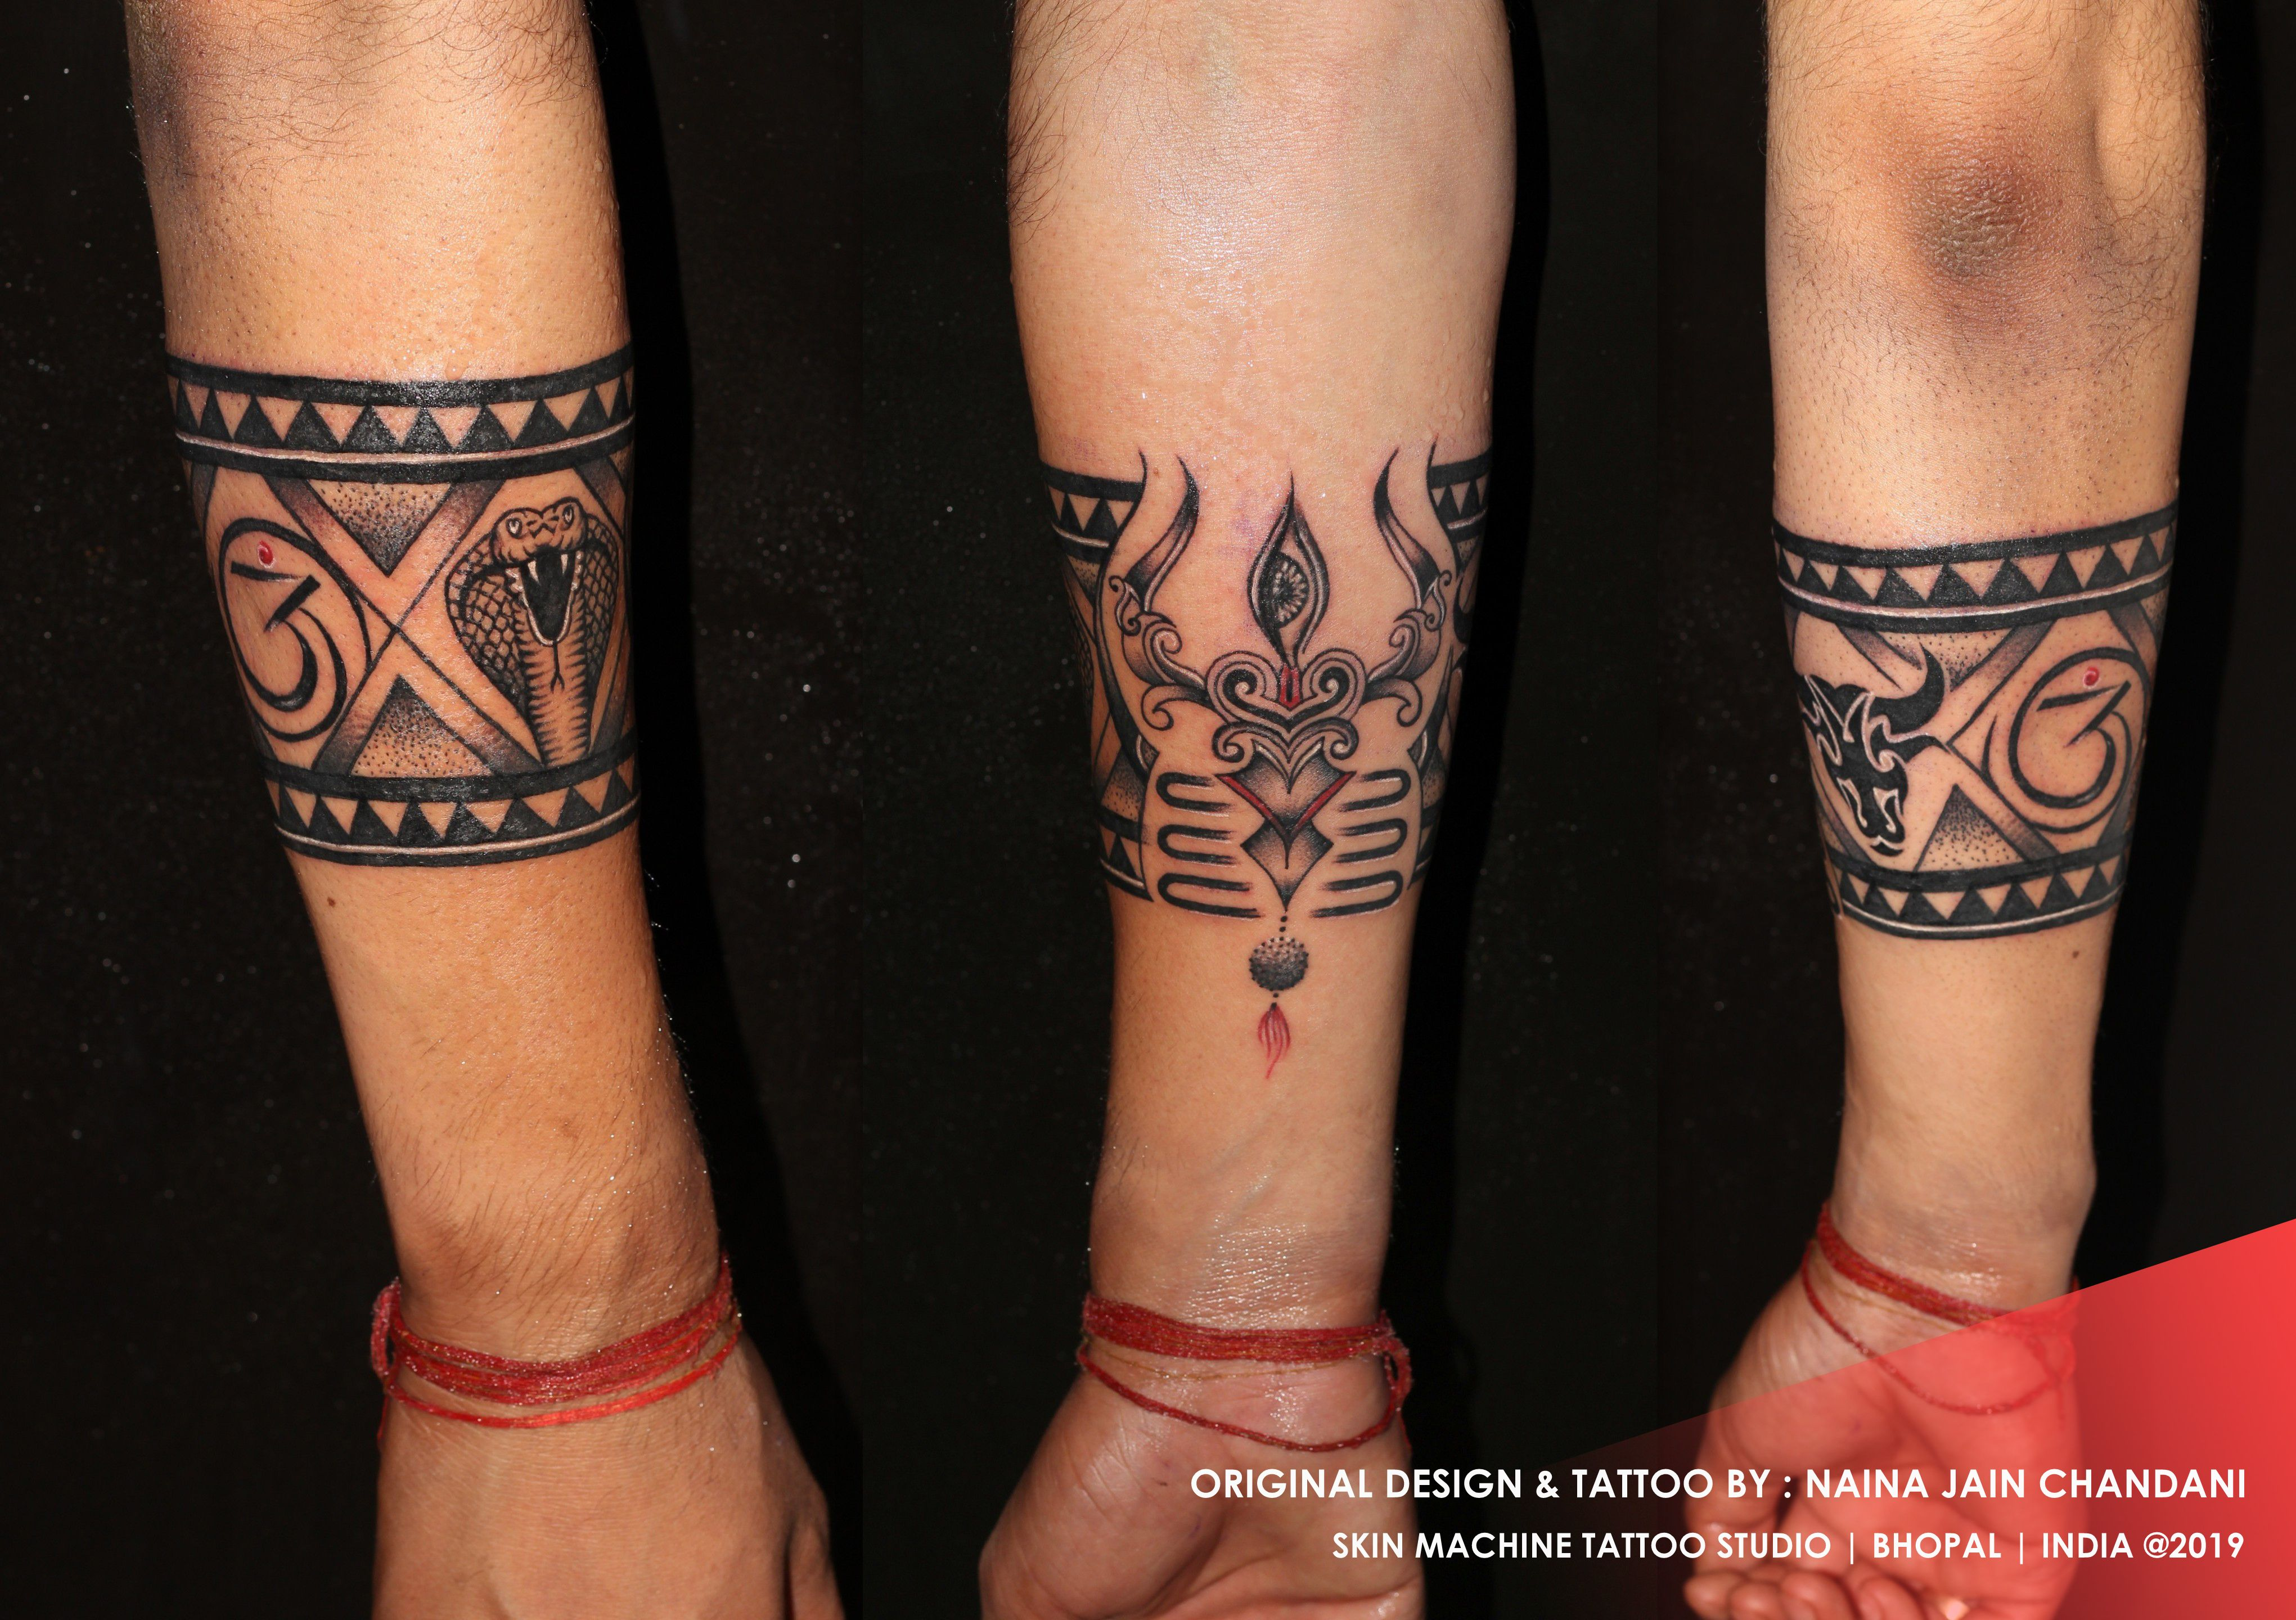 Pin By Buddeezone On My Tattoos Forearm Band Tattoos Band Tattoo Designs Shiva Tattoo Design